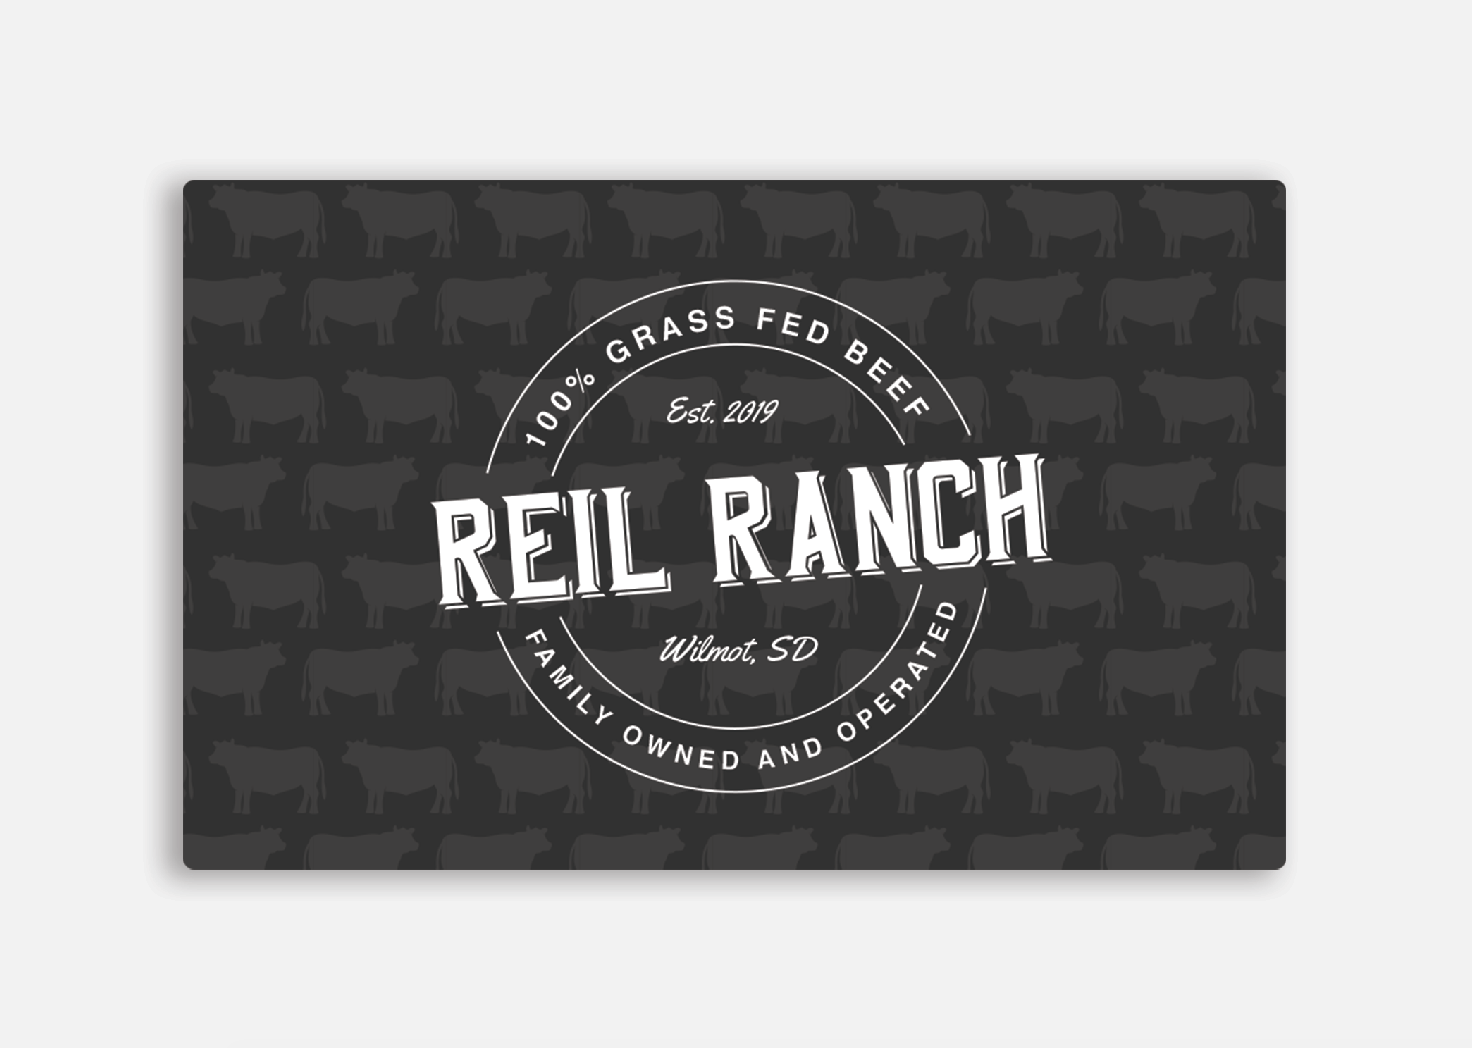 Reil Ranch Gift Card